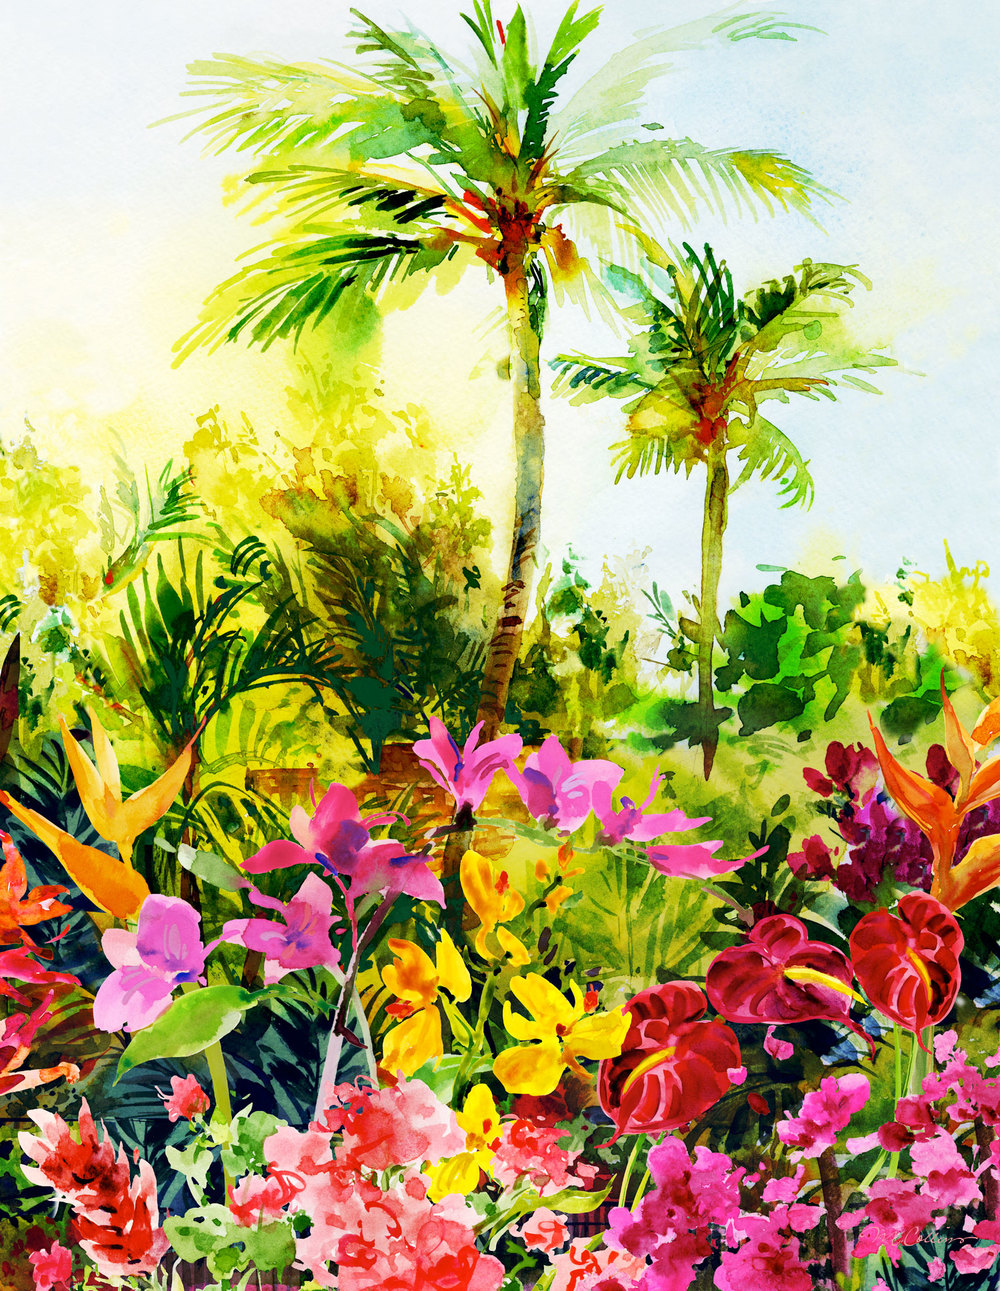 KAUAI-PALM-TREES-&-FLOWERS-FLAT.jpg